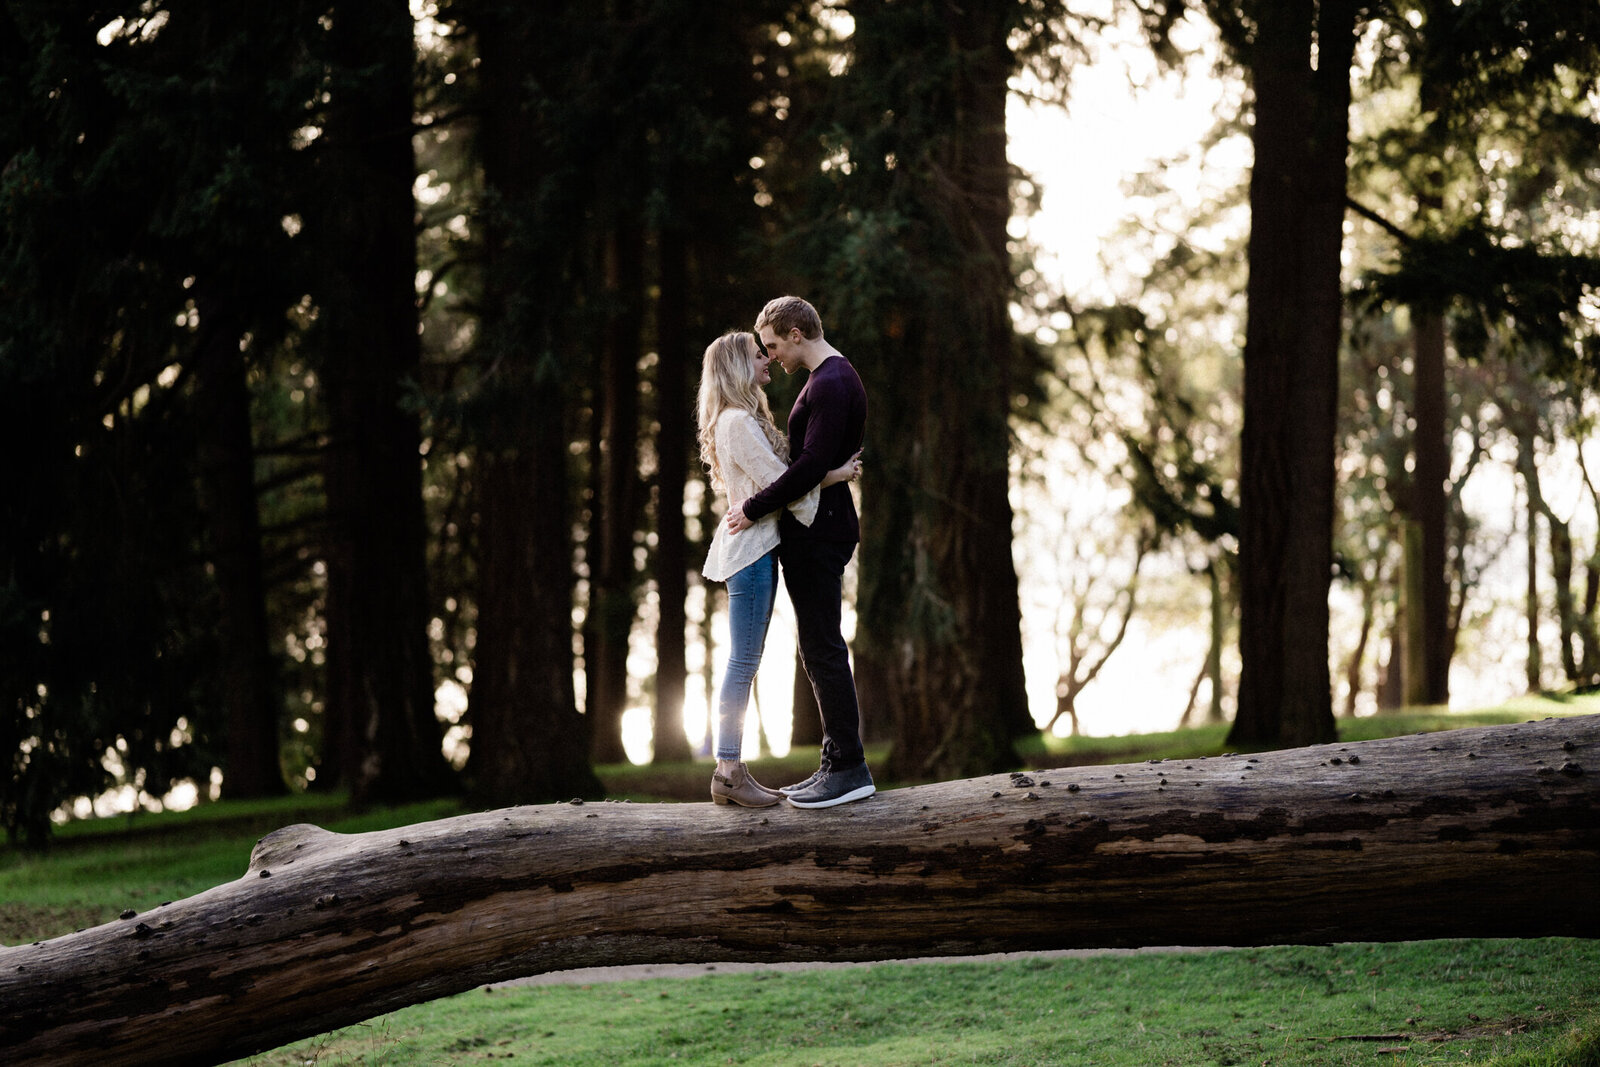 Lincoln Park trees and meadows make it one of the best spots for engagement photos in Seattle